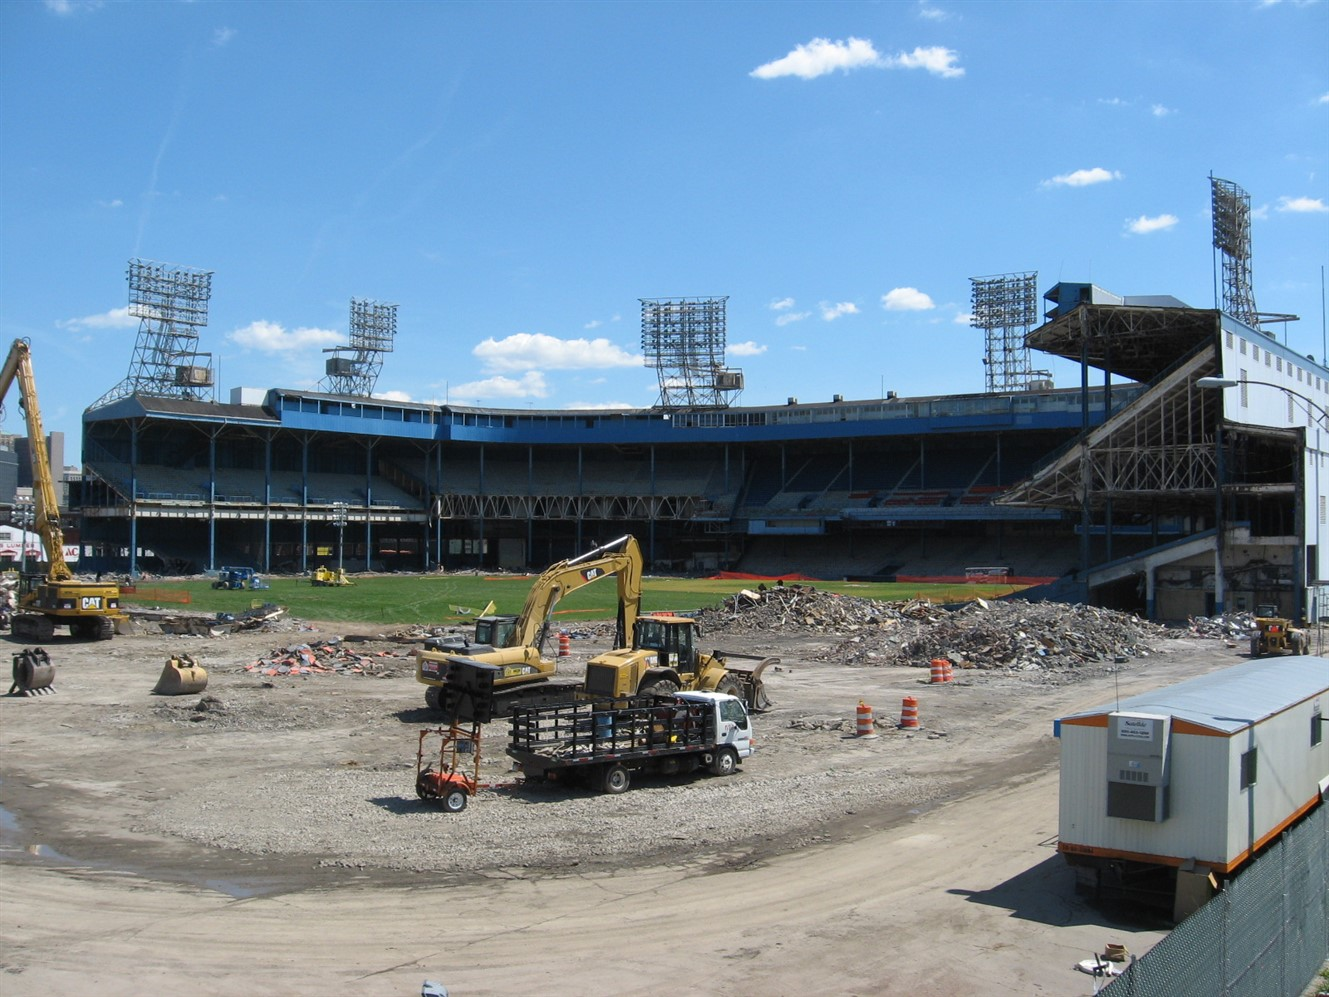 2008 08 16 104 Detroit Tiger Stadium.jpg